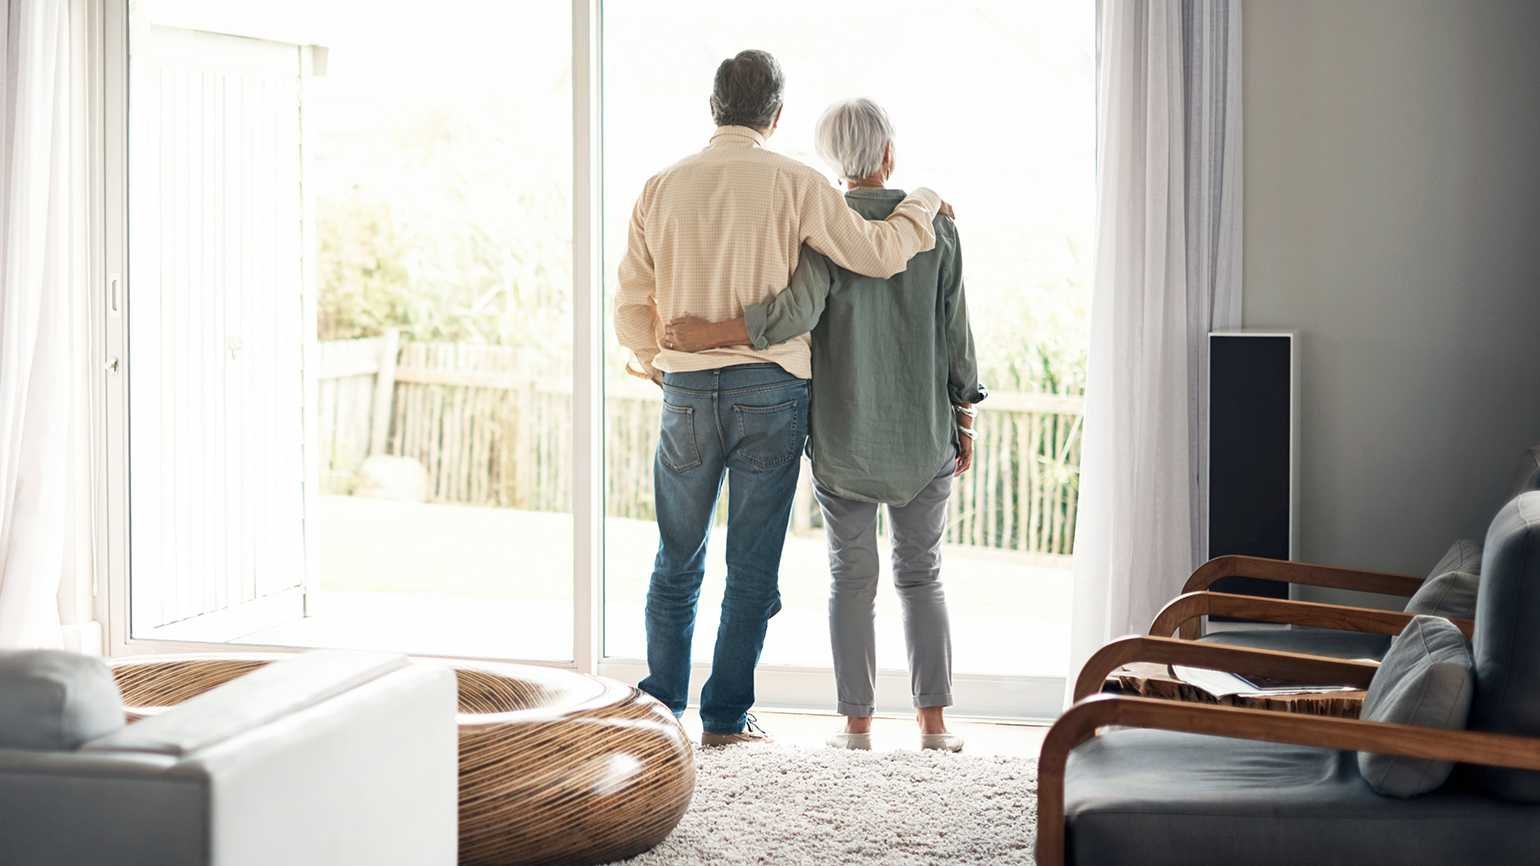 A husband/caregiver stands gazing out the window with his arm around his wife's shoulder